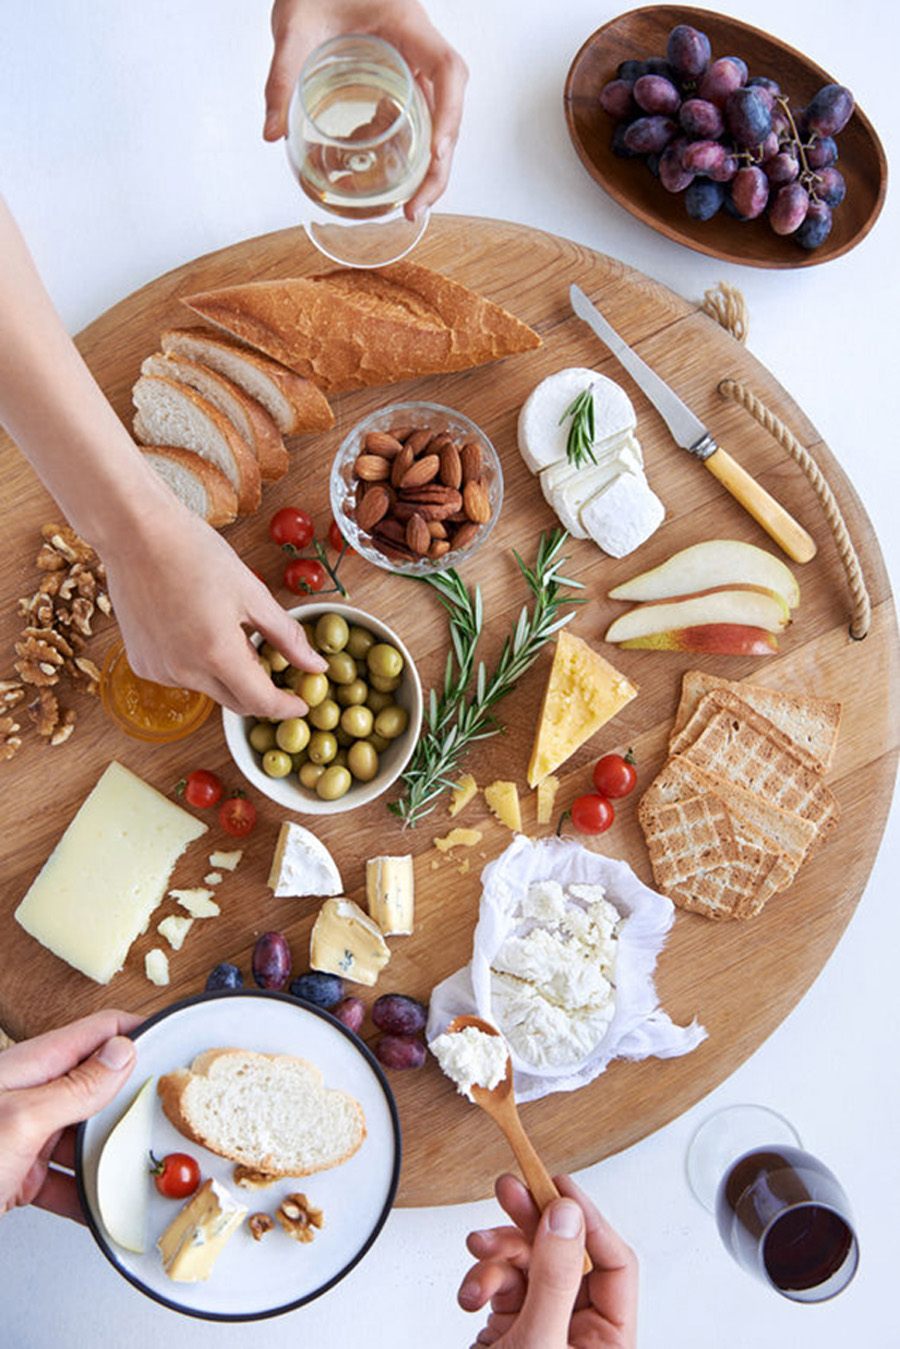 Here are some helpful tips for choosing the cheese and putting the tray together. & A Fabulous Holiday Cheese Platter! | Fashion Cleaners